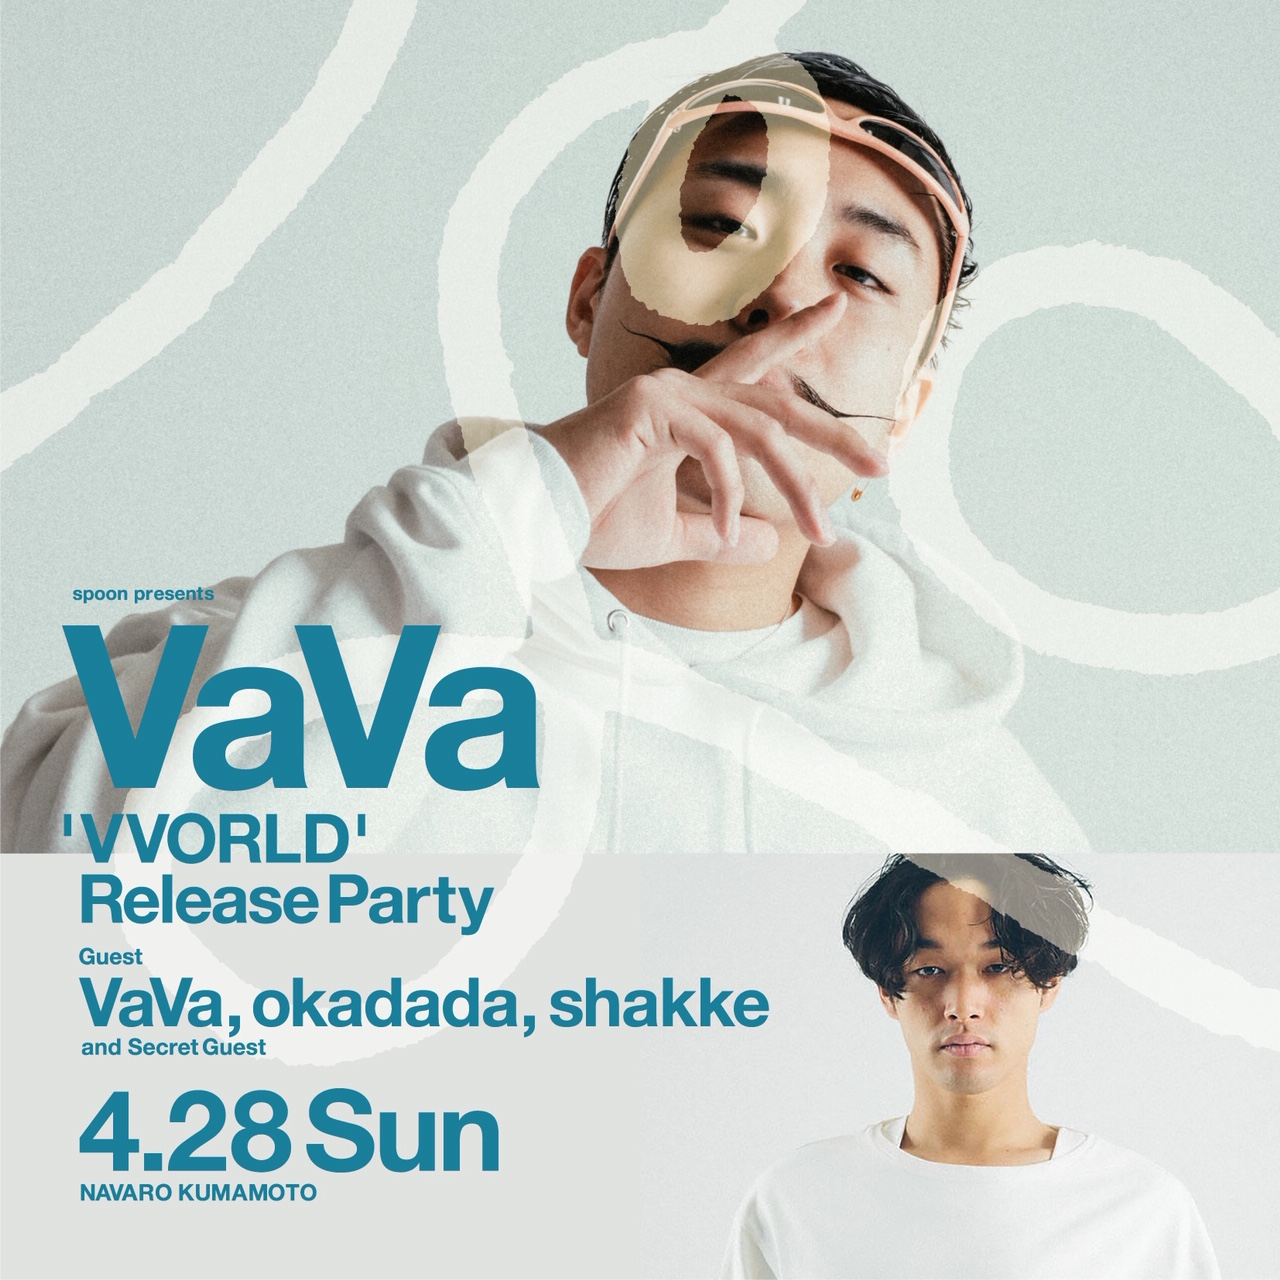 spoon presents VaVa 'VVORLD' Release Party